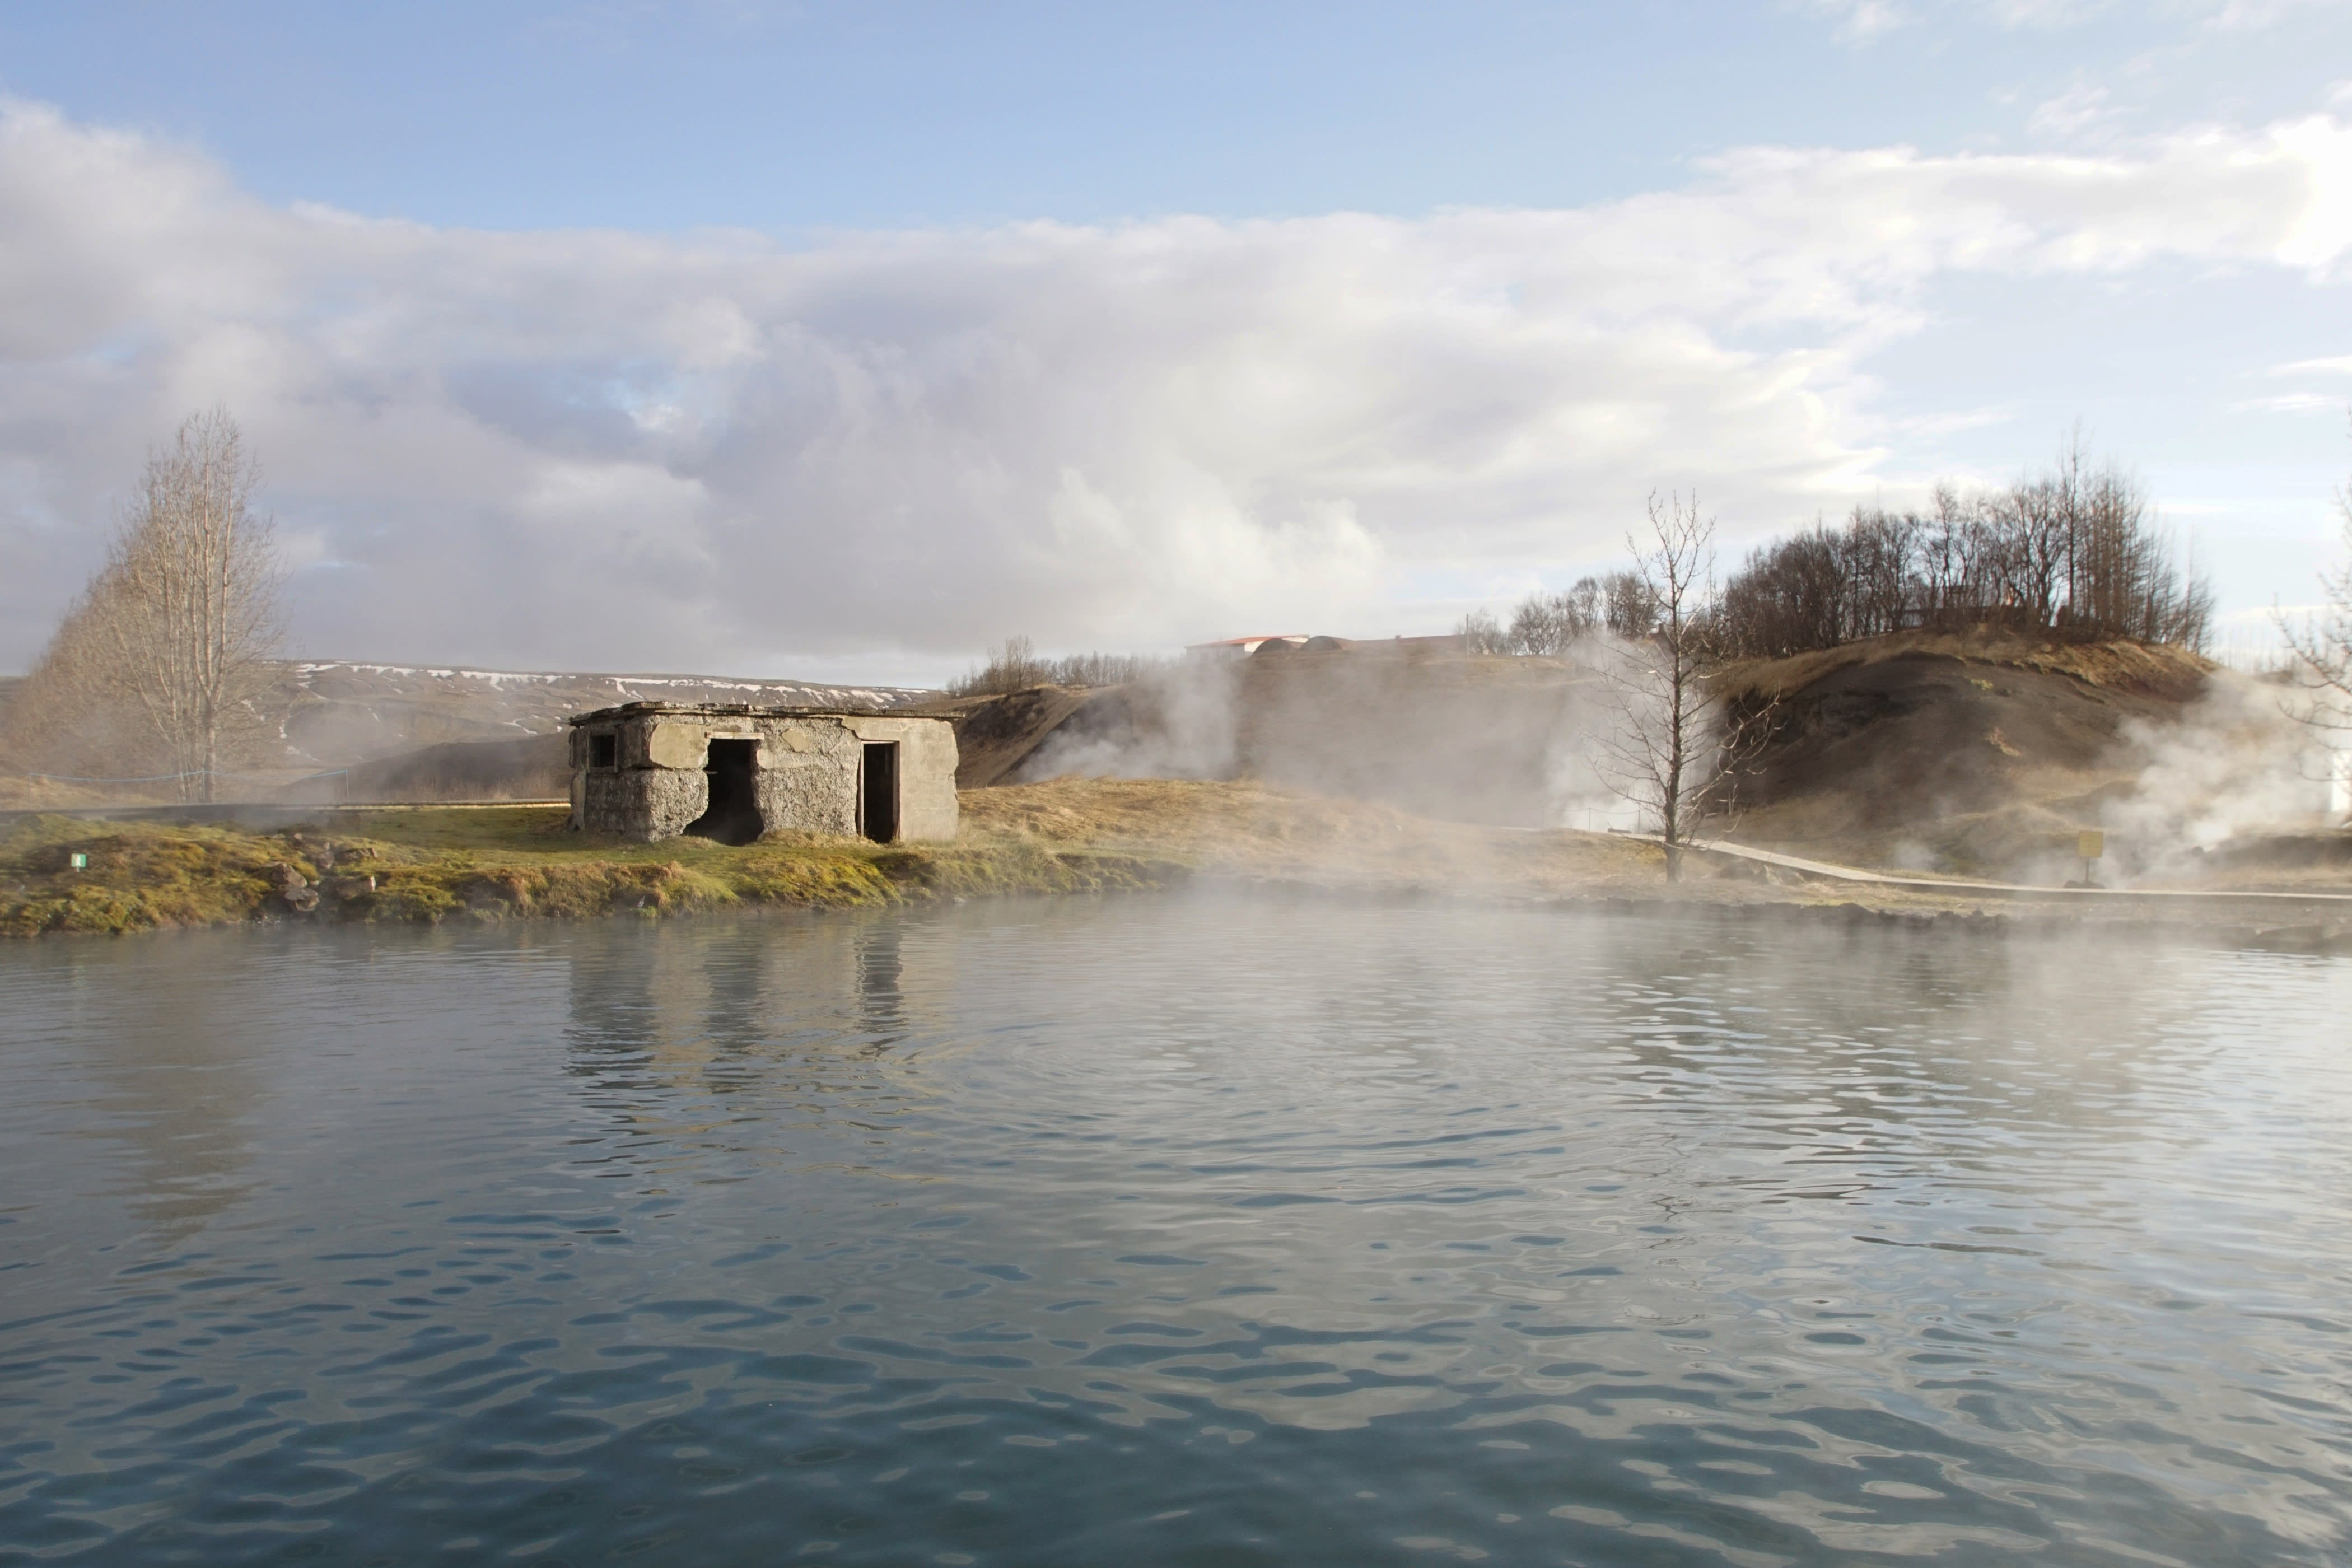 The Seecret Lagoon at Fludir with steam coming off from the warm geothermal water